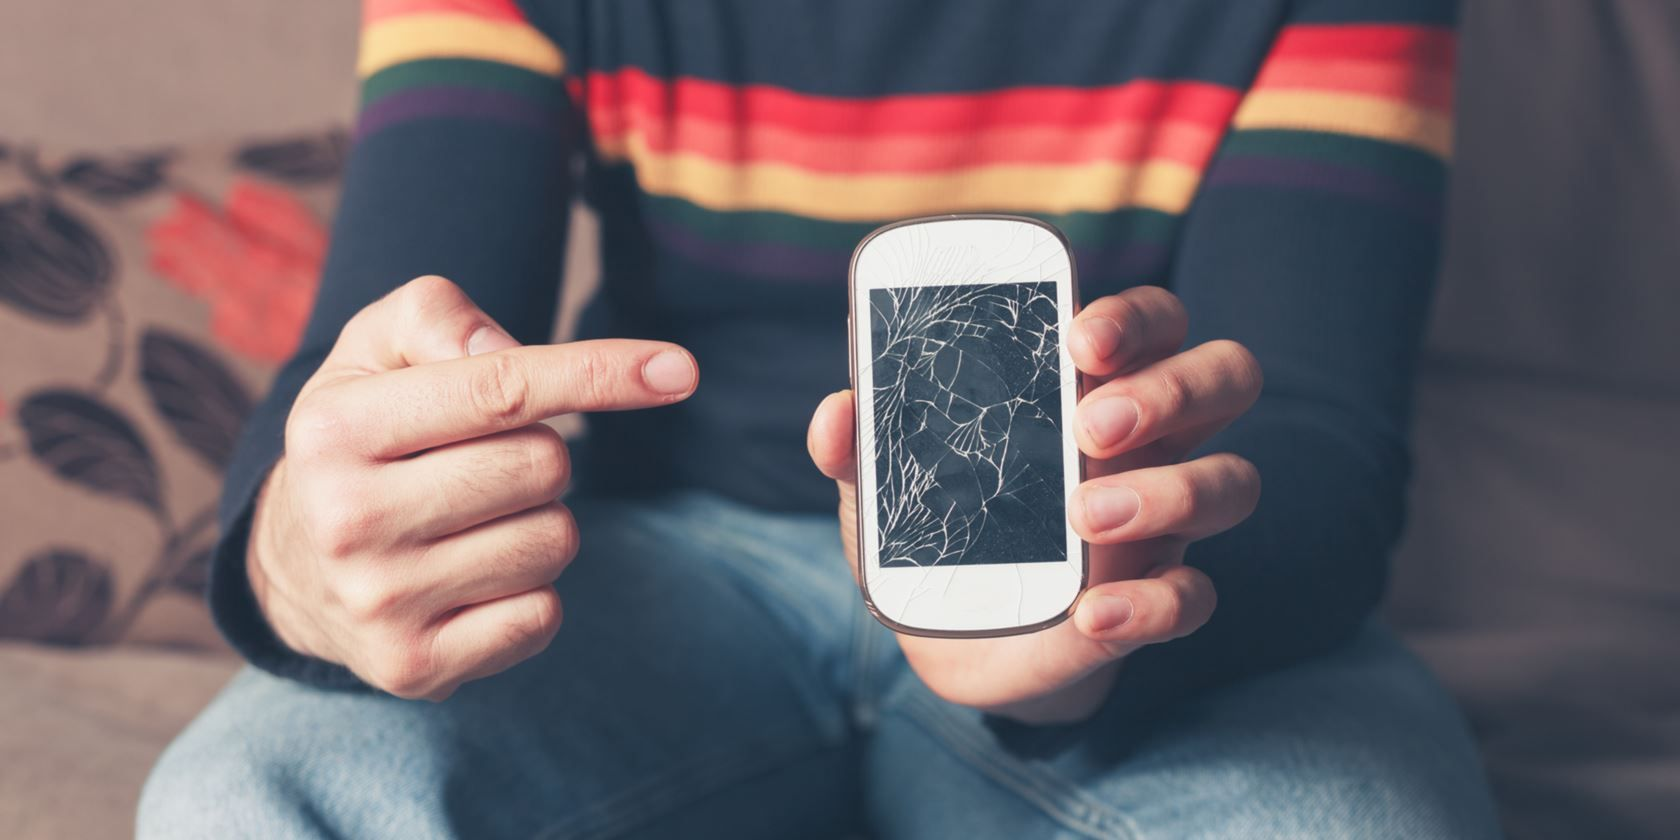 Cracked Your Screen? 7 Things to Do About a Broken Phone Screen